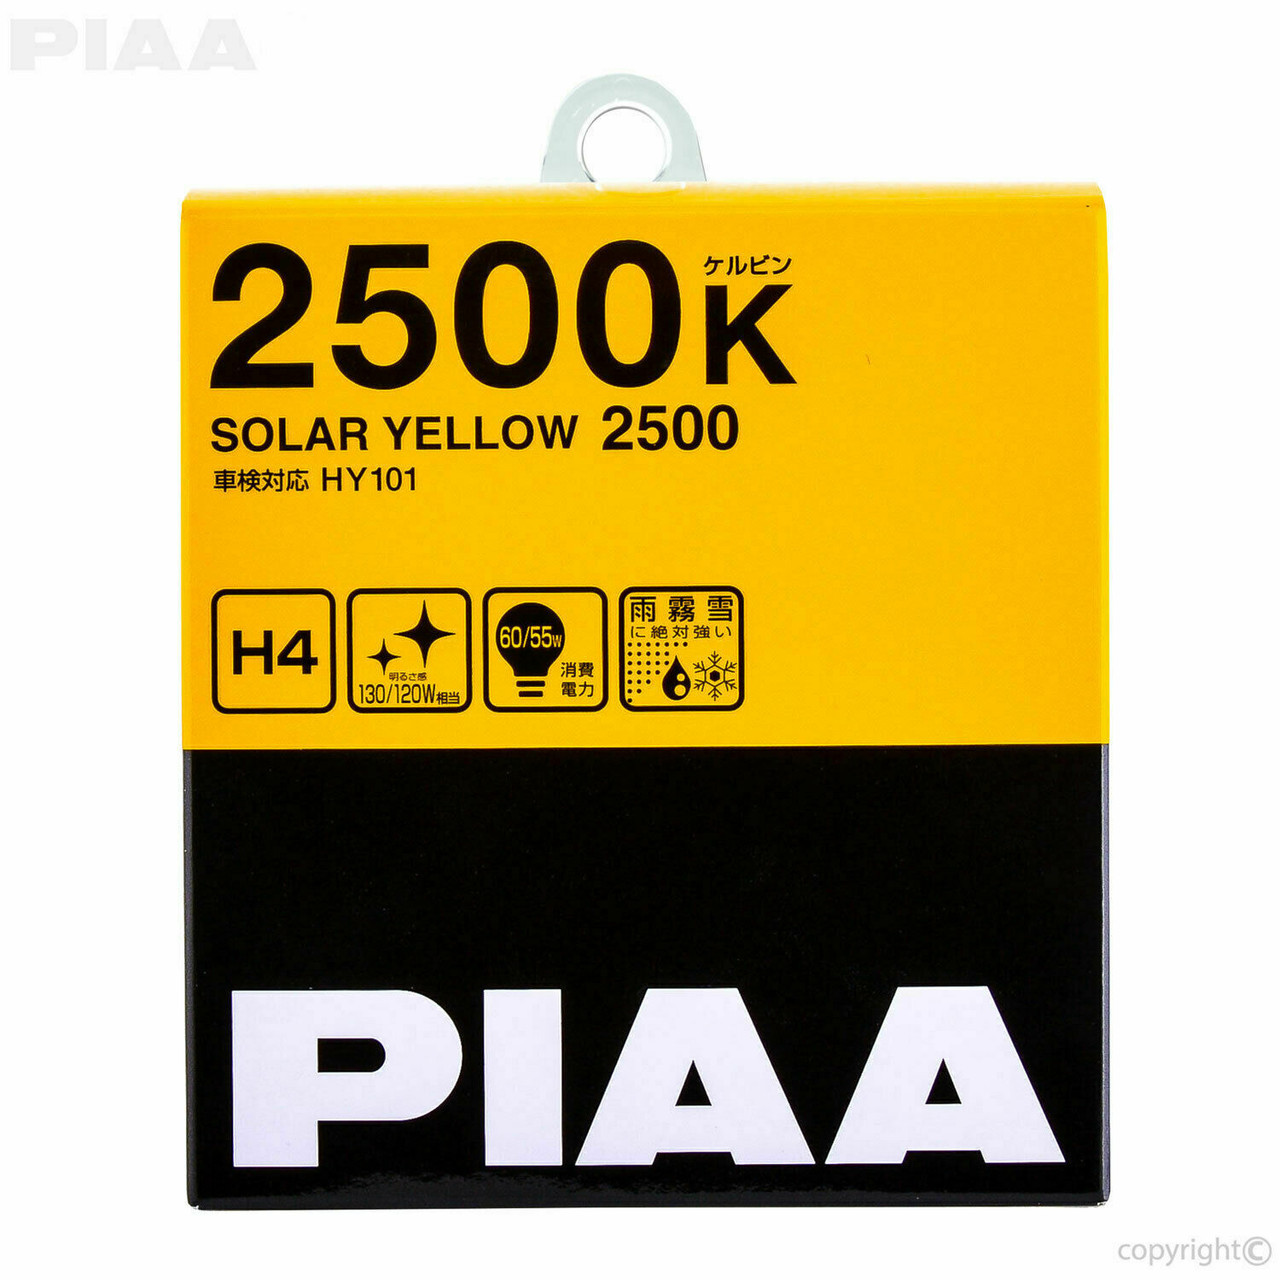 PIAA H4 2500K Solar Yellow Gold 60/55w = 130/120w XTRA Bulb Set from Japan